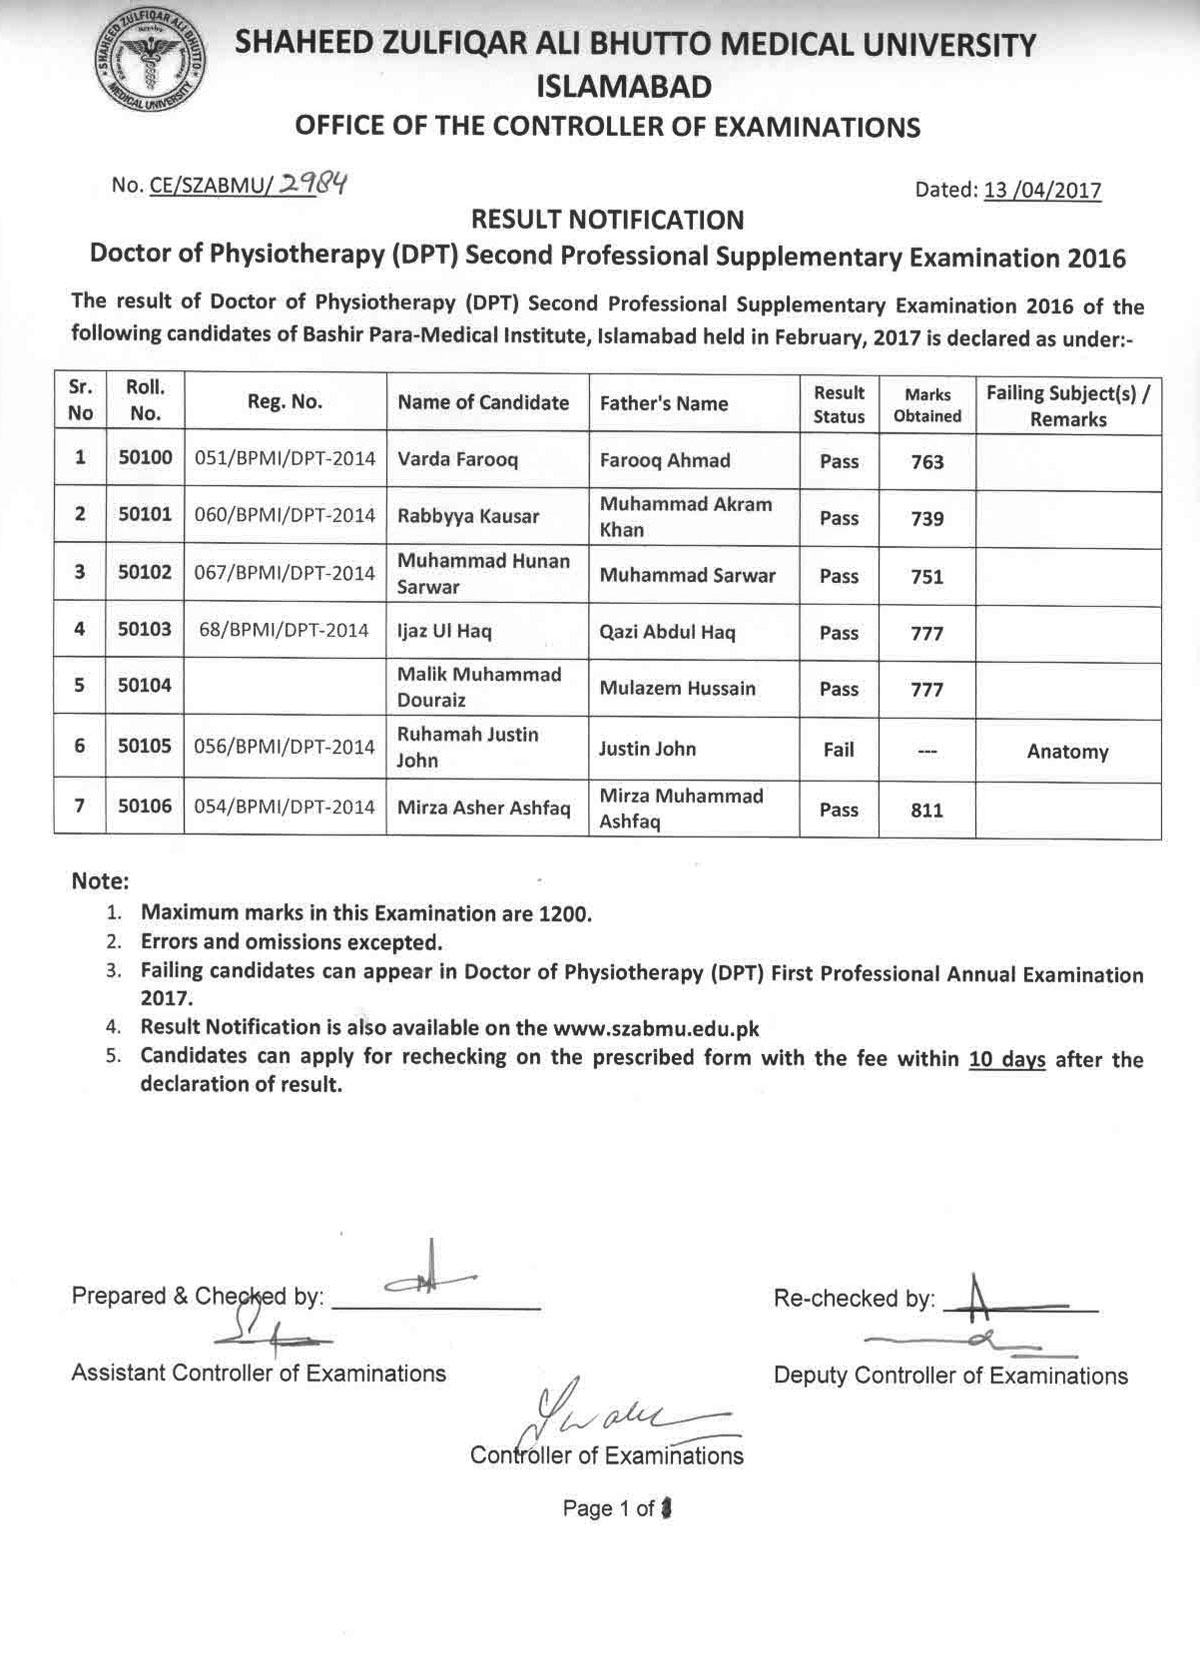 Result Notification - DPT 2nd Professional Supplementary Examination 2016